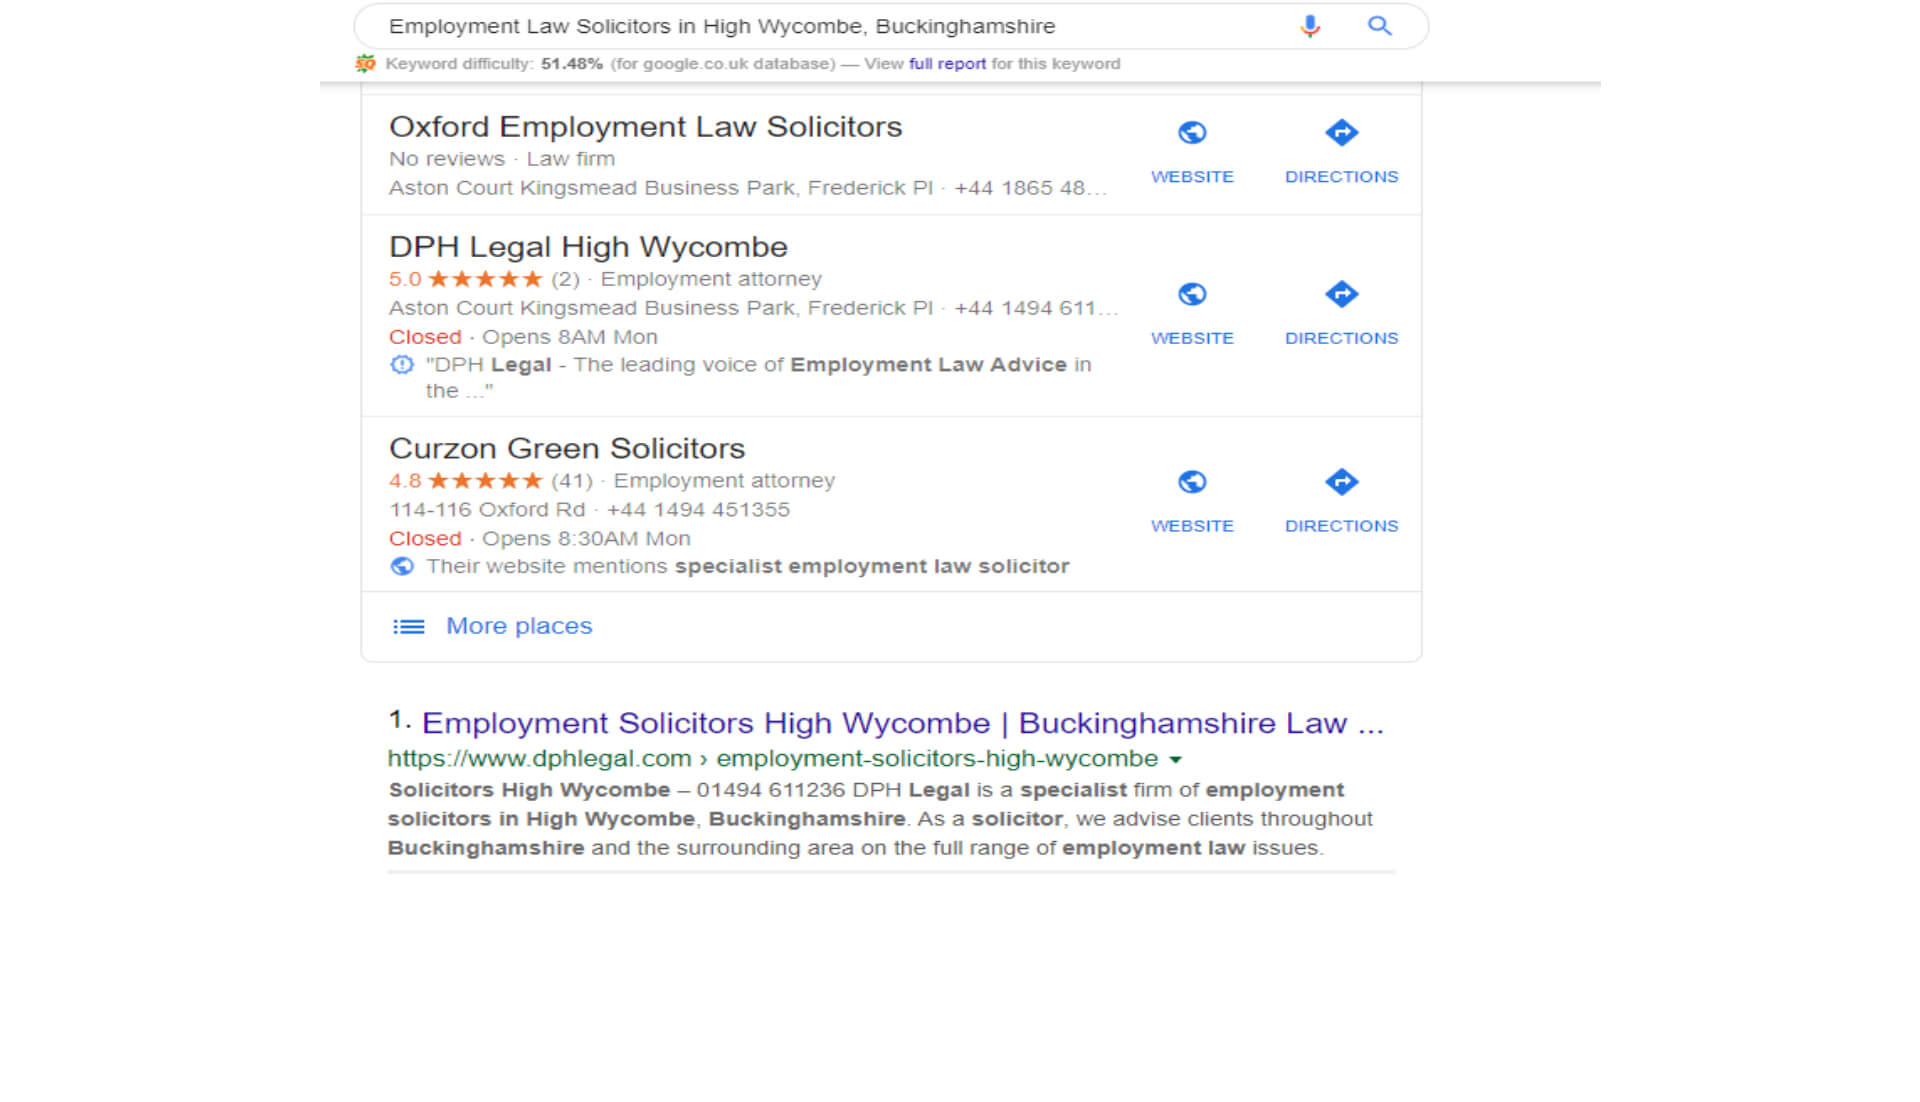 Employment Law Solicitors in High Wycombe, Buckinghamshire